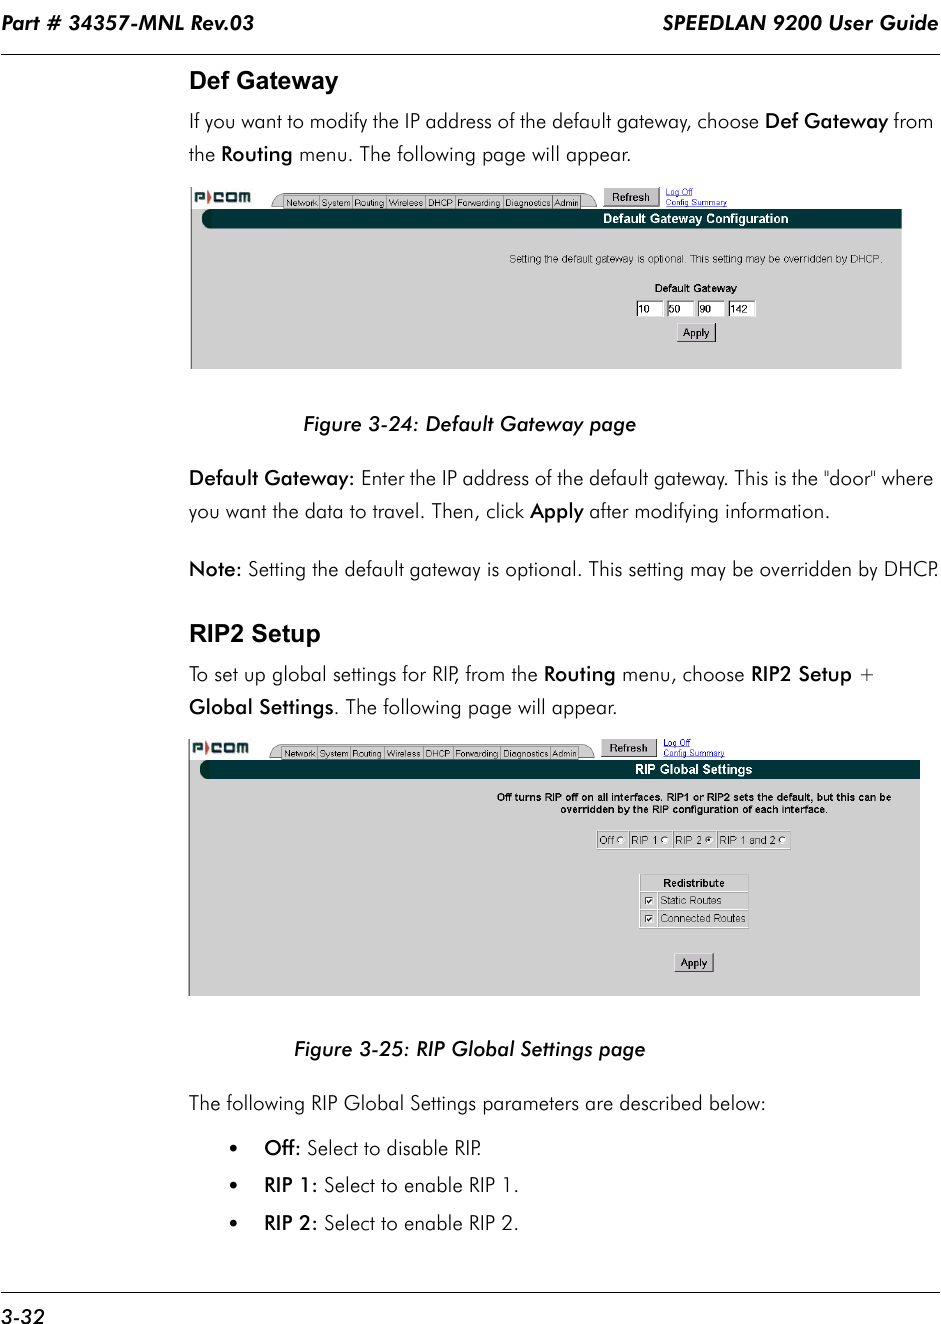 """Part # 34357-MNL Rev.03                                                                   SPEEDLAN 9200 User Guide 3-32Def GatewayIf you want to modify the IP address of the default gateway, choose Def Gateway from the Routing menu. The following page will appear.Figure 3-24: Default Gateway pageDefault Gateway: Enter the IP address of the default gateway. This is the """"door"""" where you want the data to travel. Then, click Apply after modifying information.Note: Setting the default gateway is optional. This setting may be overridden by DHCP.RIP2 SetupTo set up global settings for RIP, from the Routing menu, choose RIP2 Setup + Global Settings. The following page will appear.Figure 3-25: RIP Global Settings pageThe following RIP Global Settings parameters are described below:•Off: Select to disable RIP.•RIP 1: Select to enable RIP 1.•RIP 2: Select to enable RIP 2."""